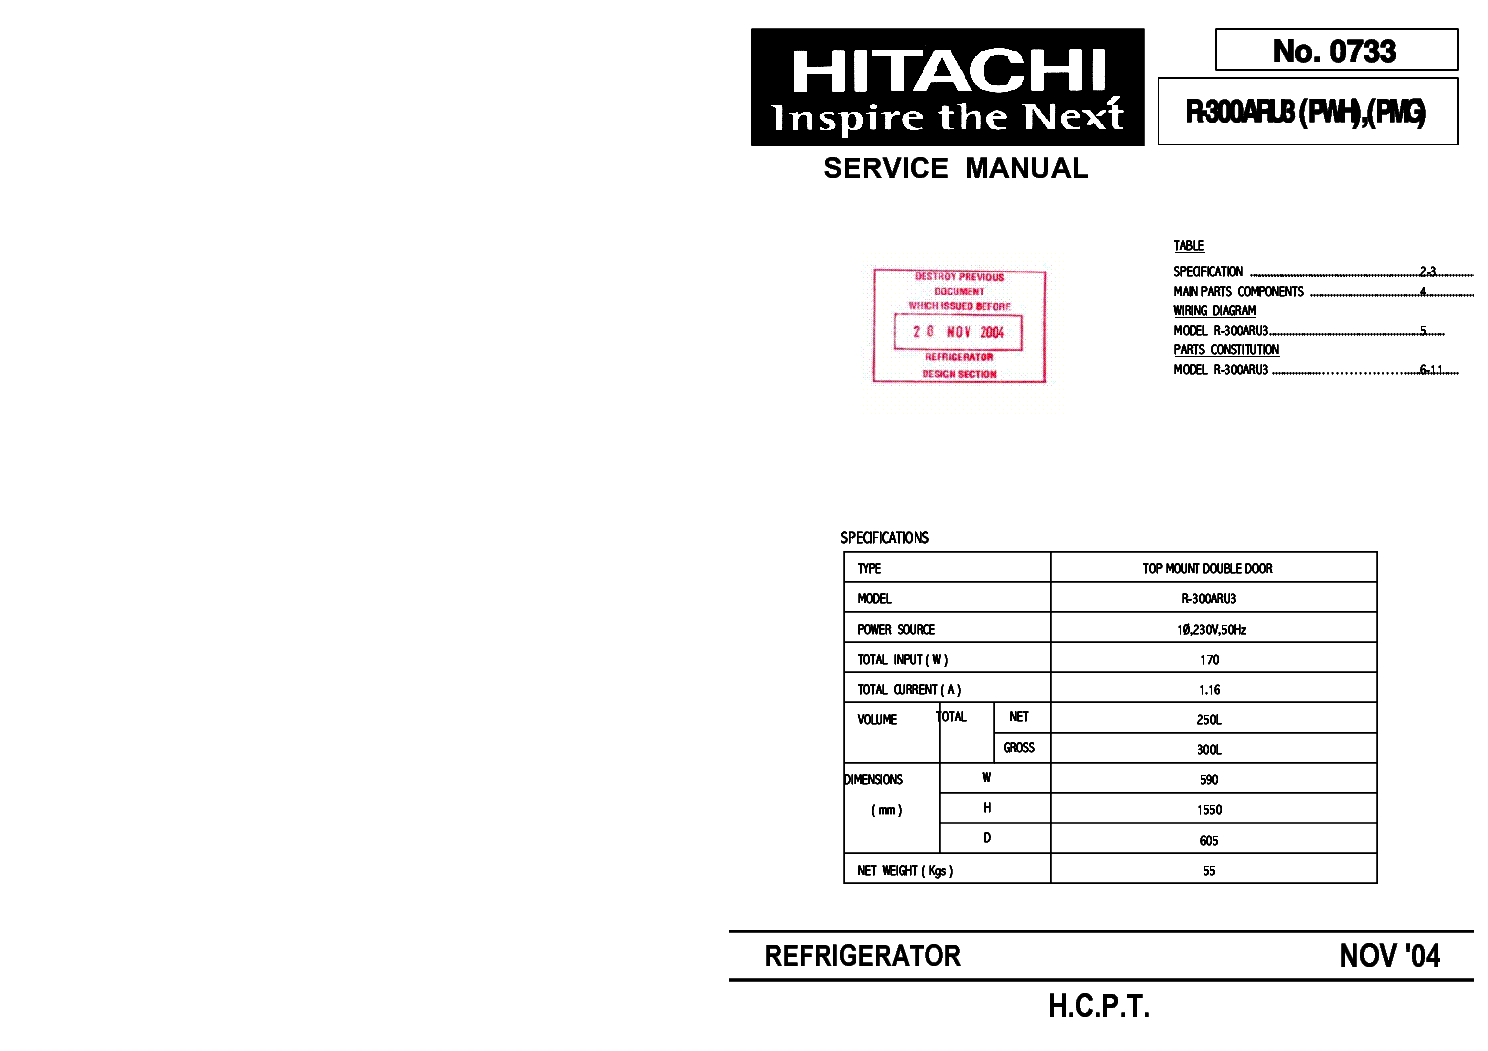 HITACHI R-300ARU3 PWH,PMG Service Manual download